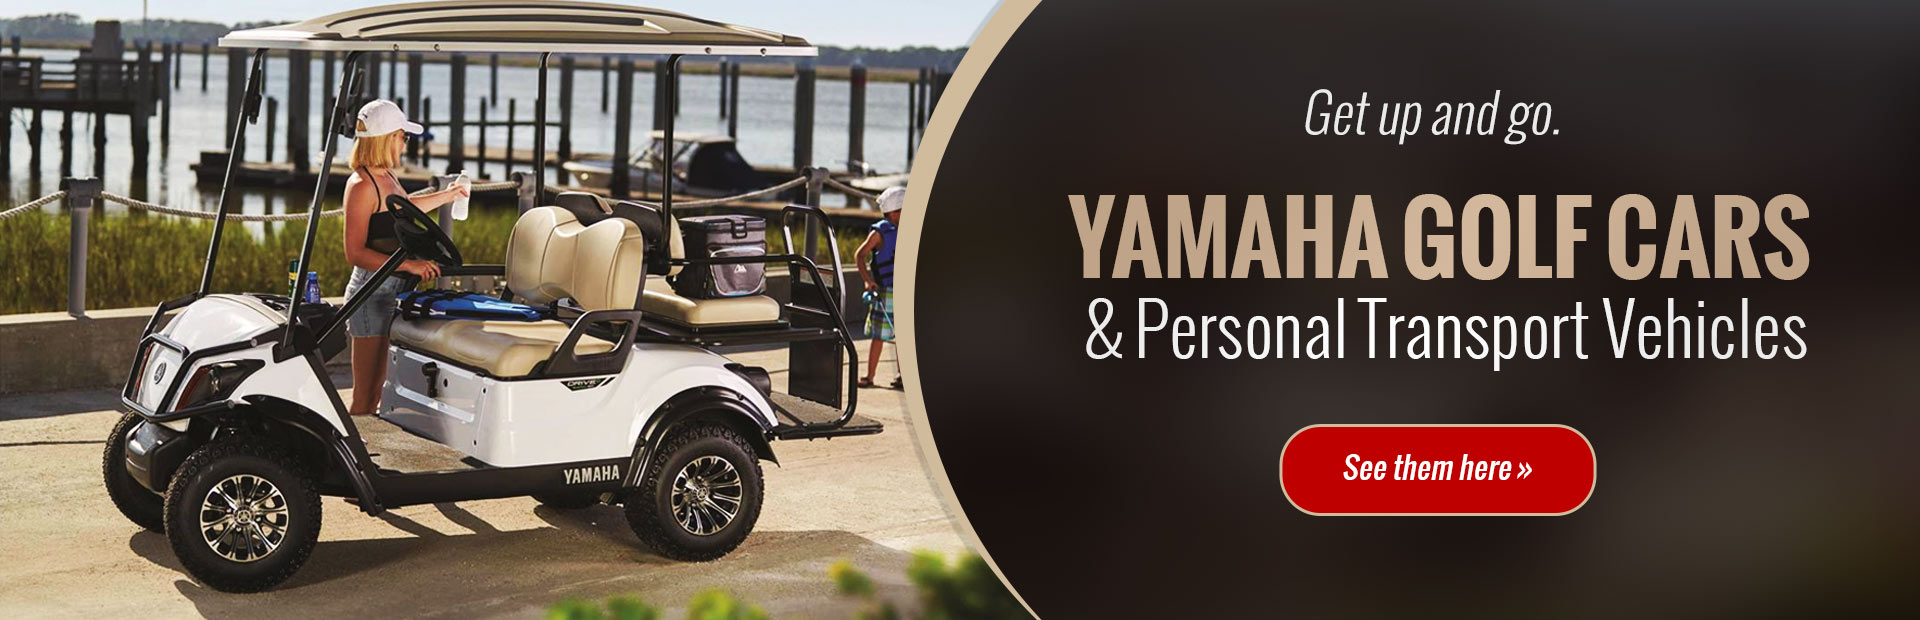 Yamaha Golf Cars & Personal Transport Vehicles: Click here to view the models.